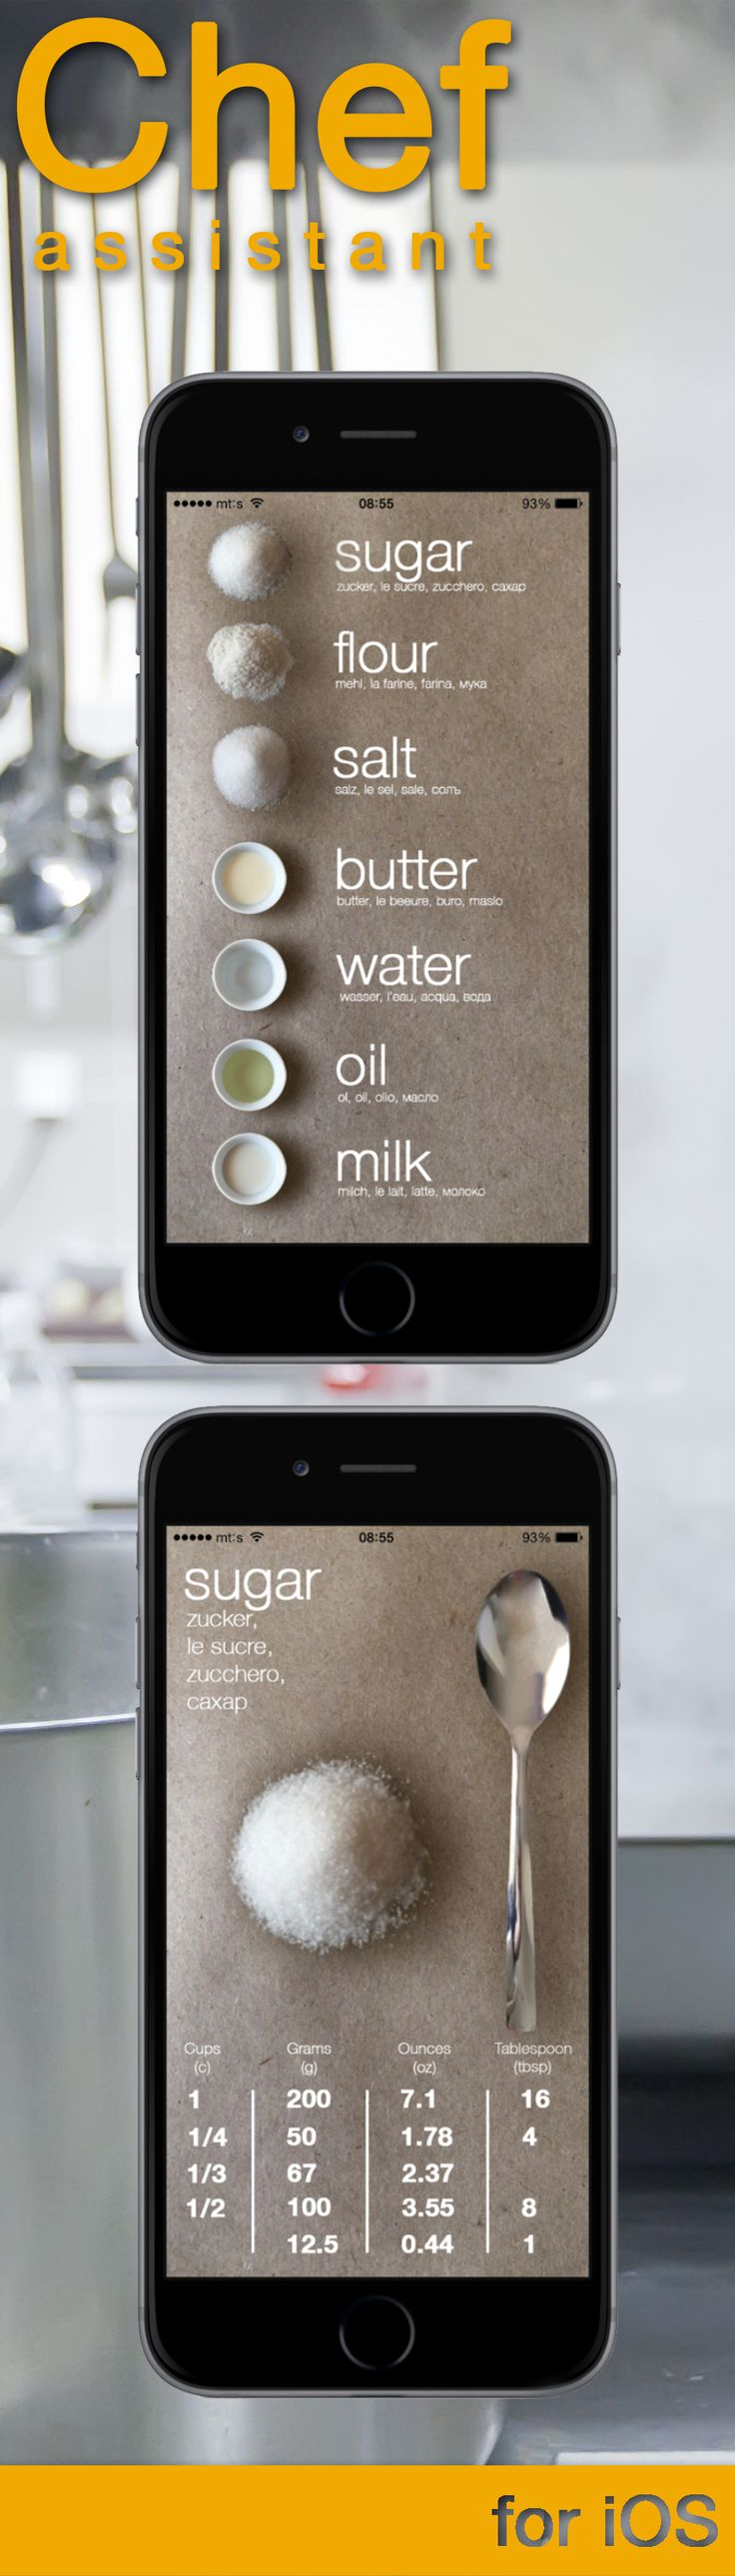 CHEF ASSISTANT is an app for simple measurement of groceries in a recipe. Chef assistant by GRGA iOS apps&games https://appsto.re/us/A-_66.i